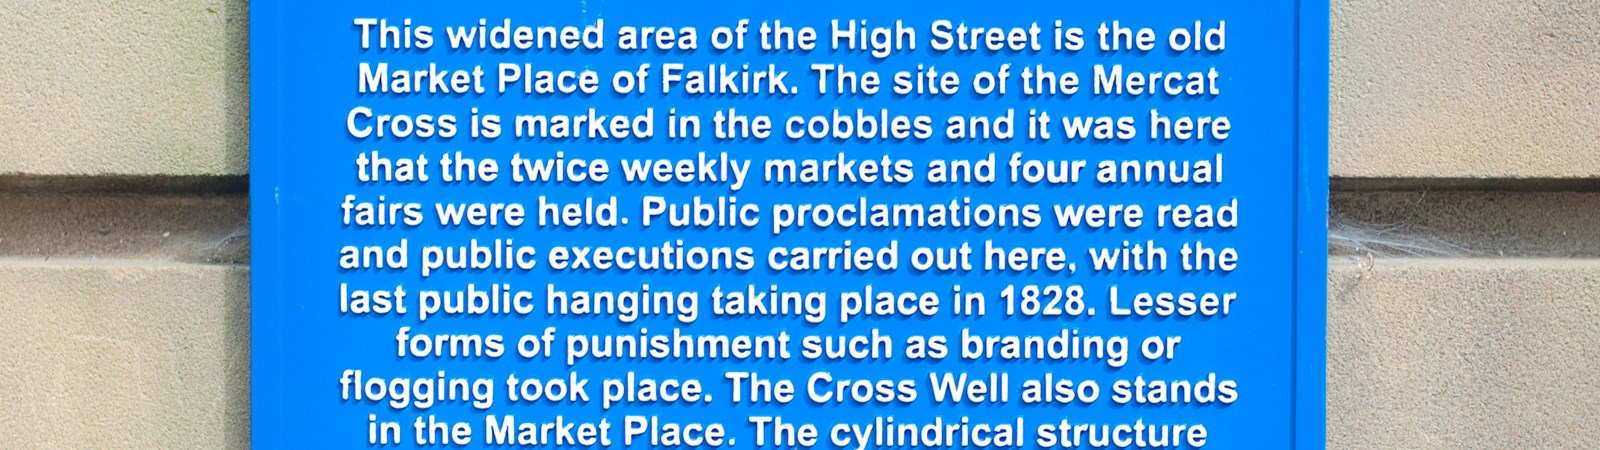 Falkirk Town Heritage Trail, Falkirk Town Centre